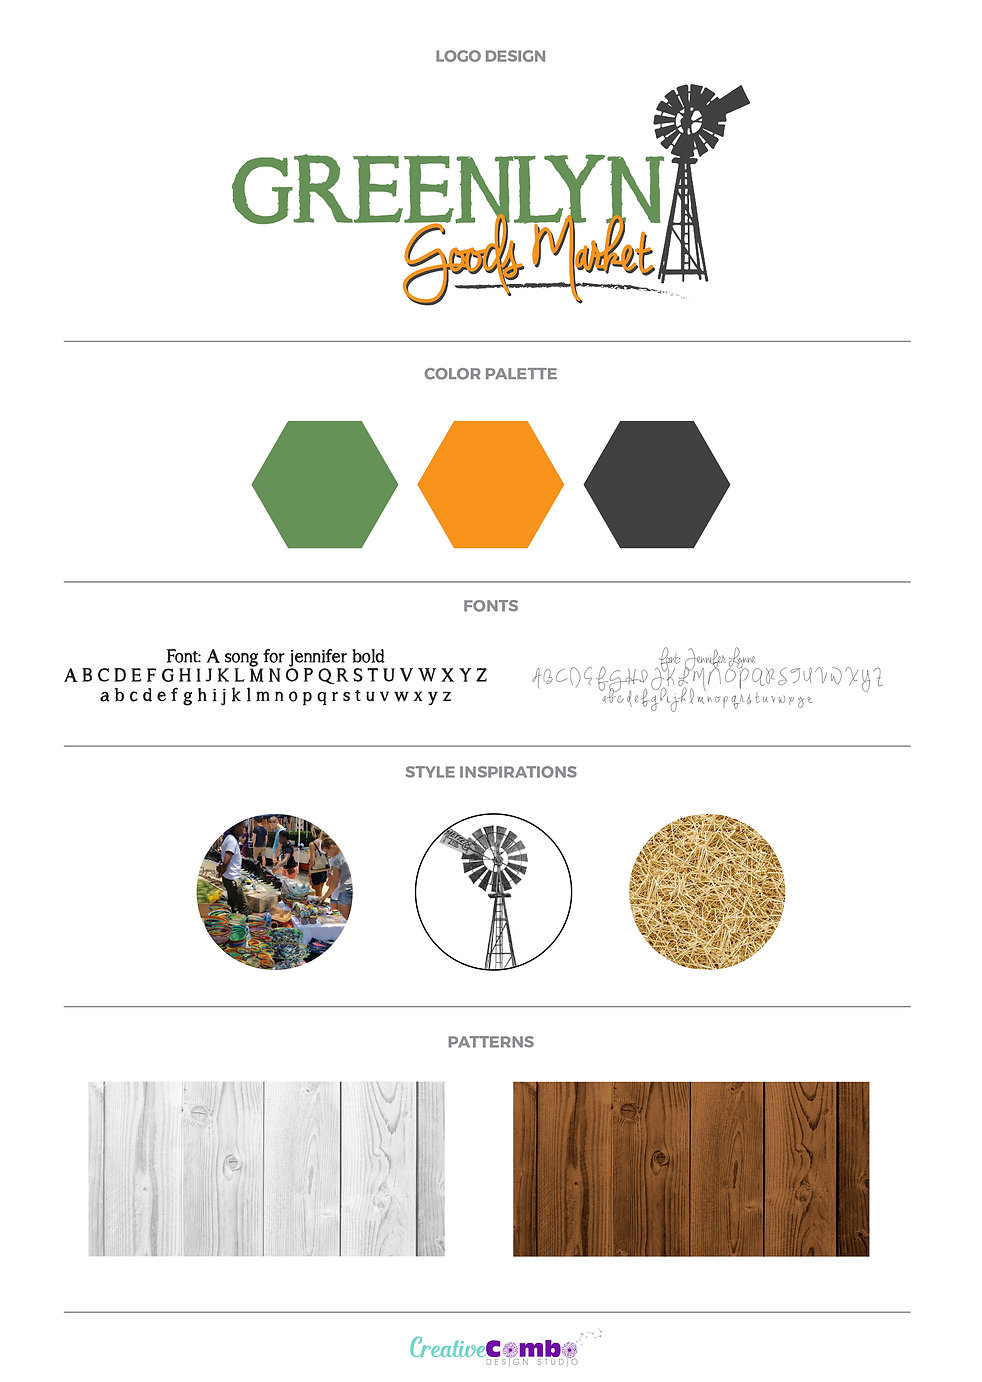 Greenlyn Goods Market Company Brand Design